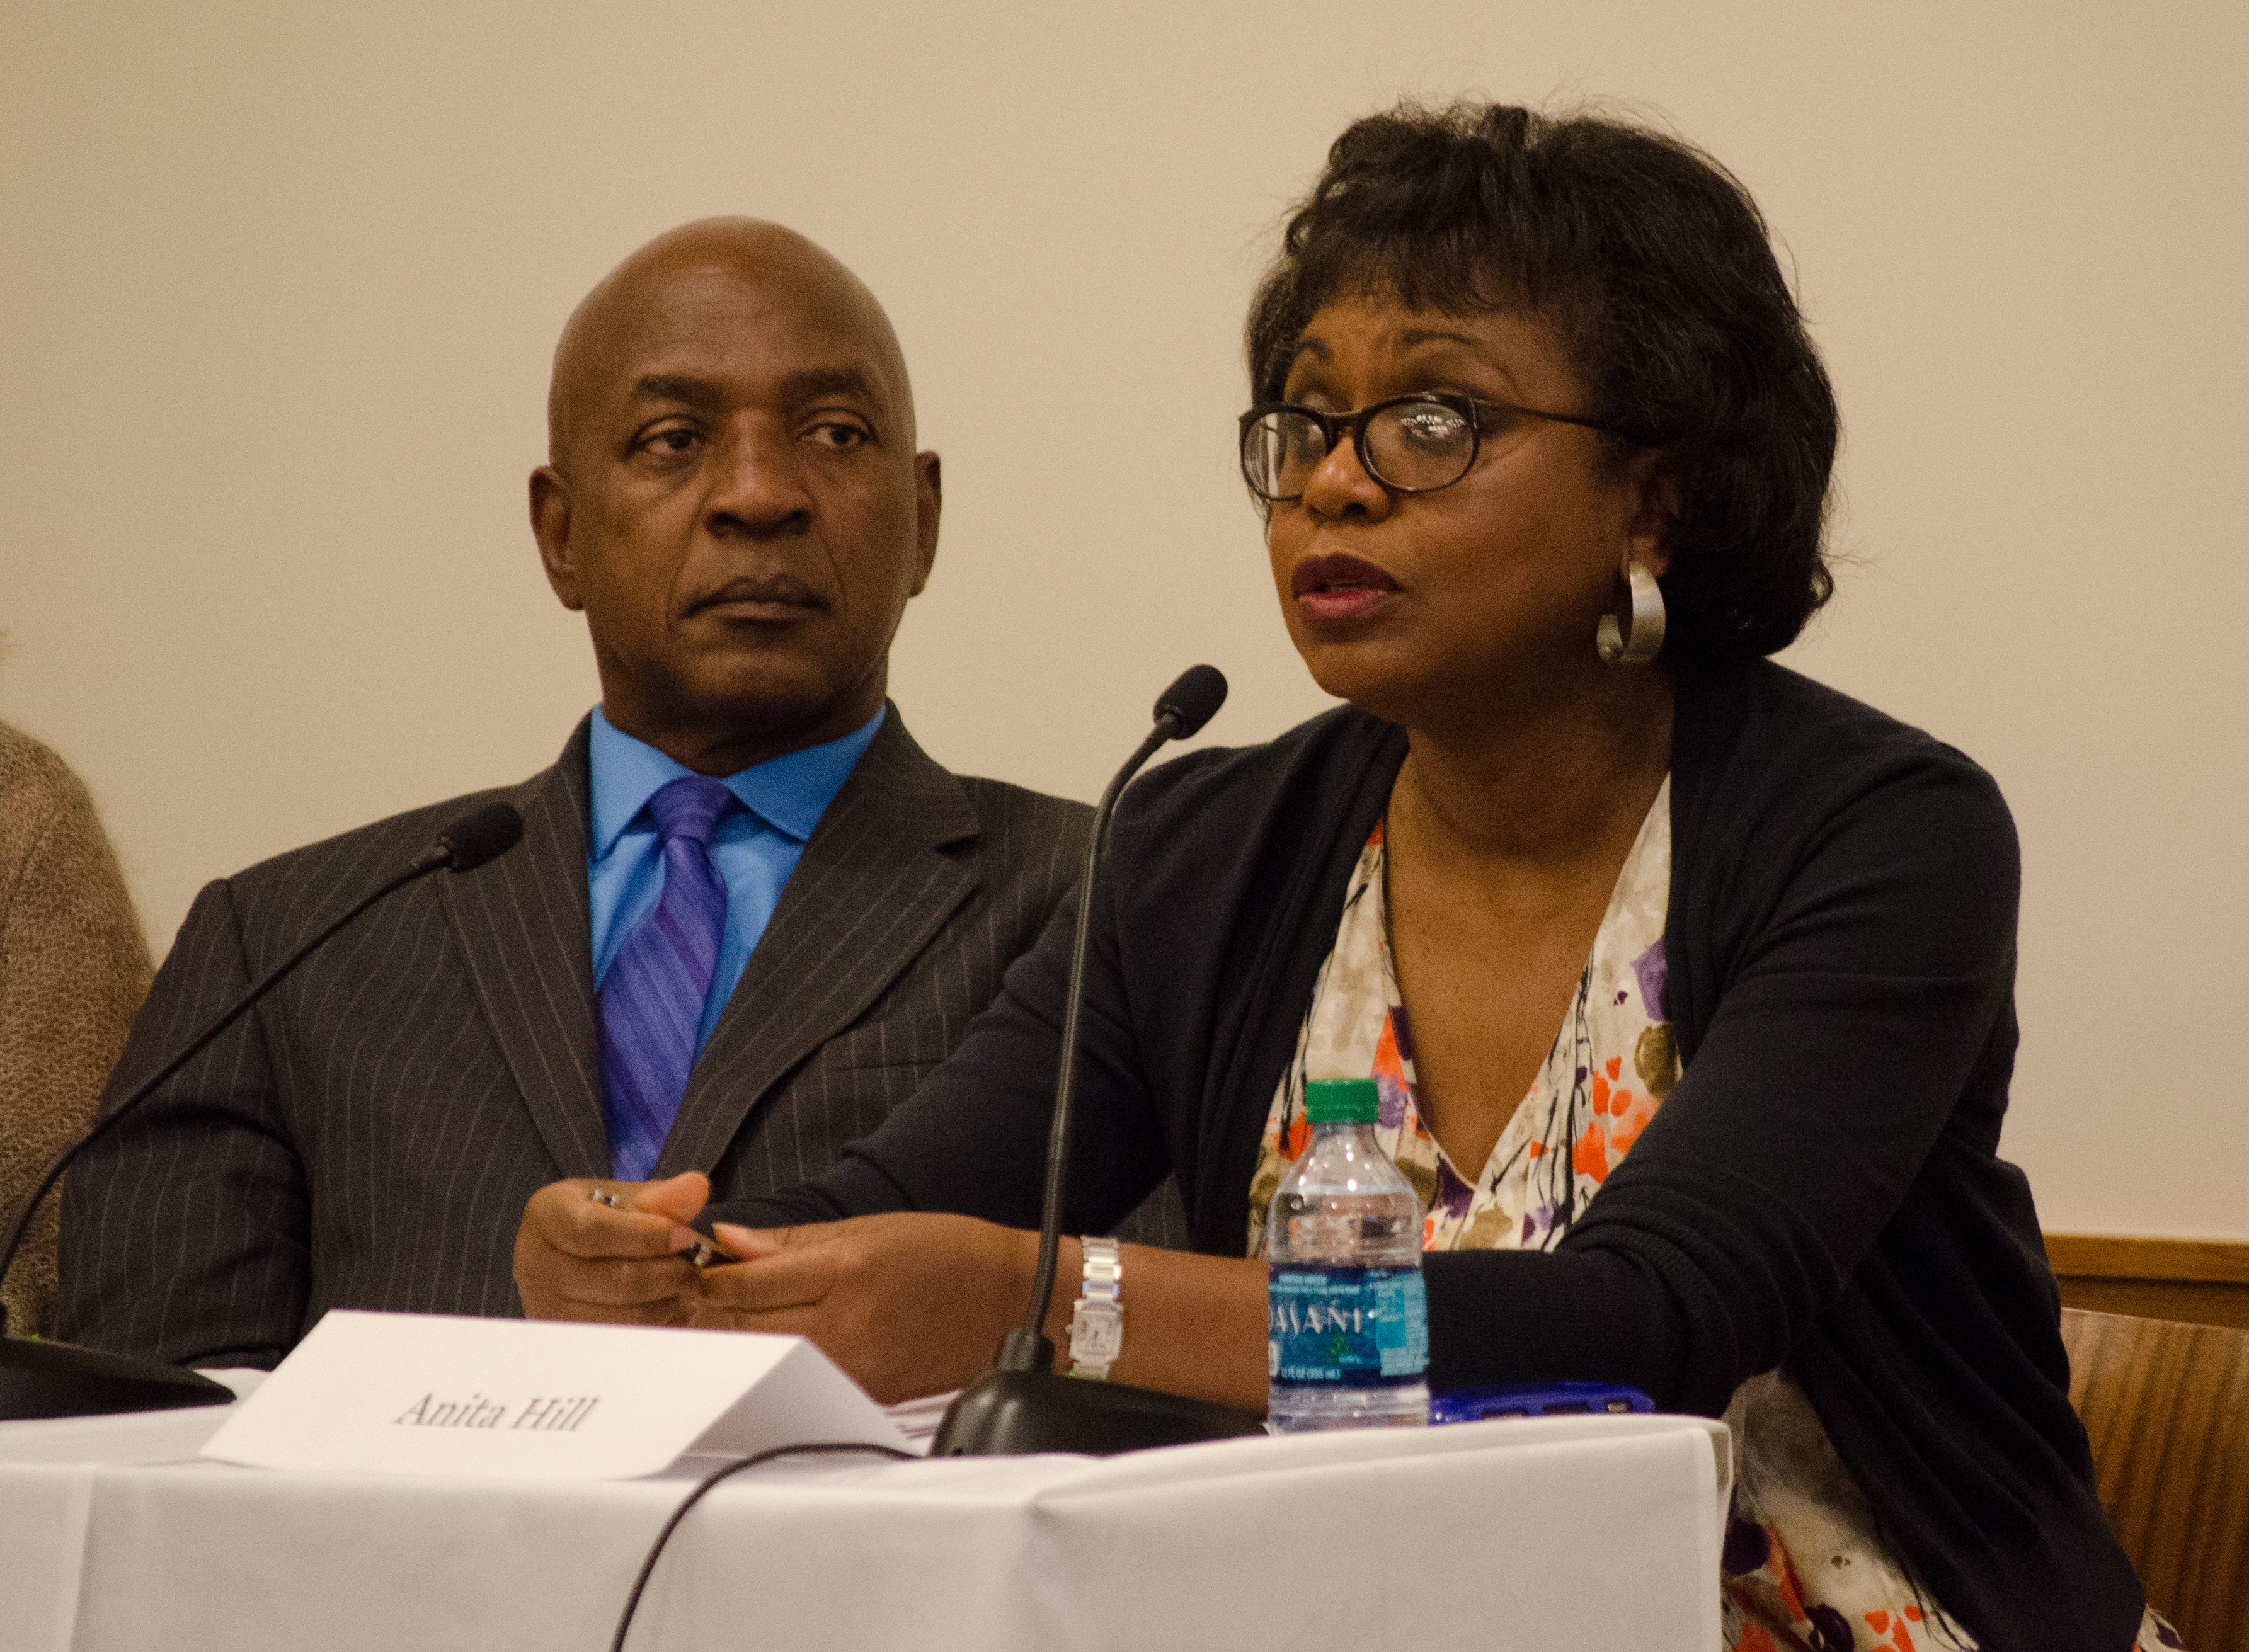 Anita Hill Married Anita Hill And Charles